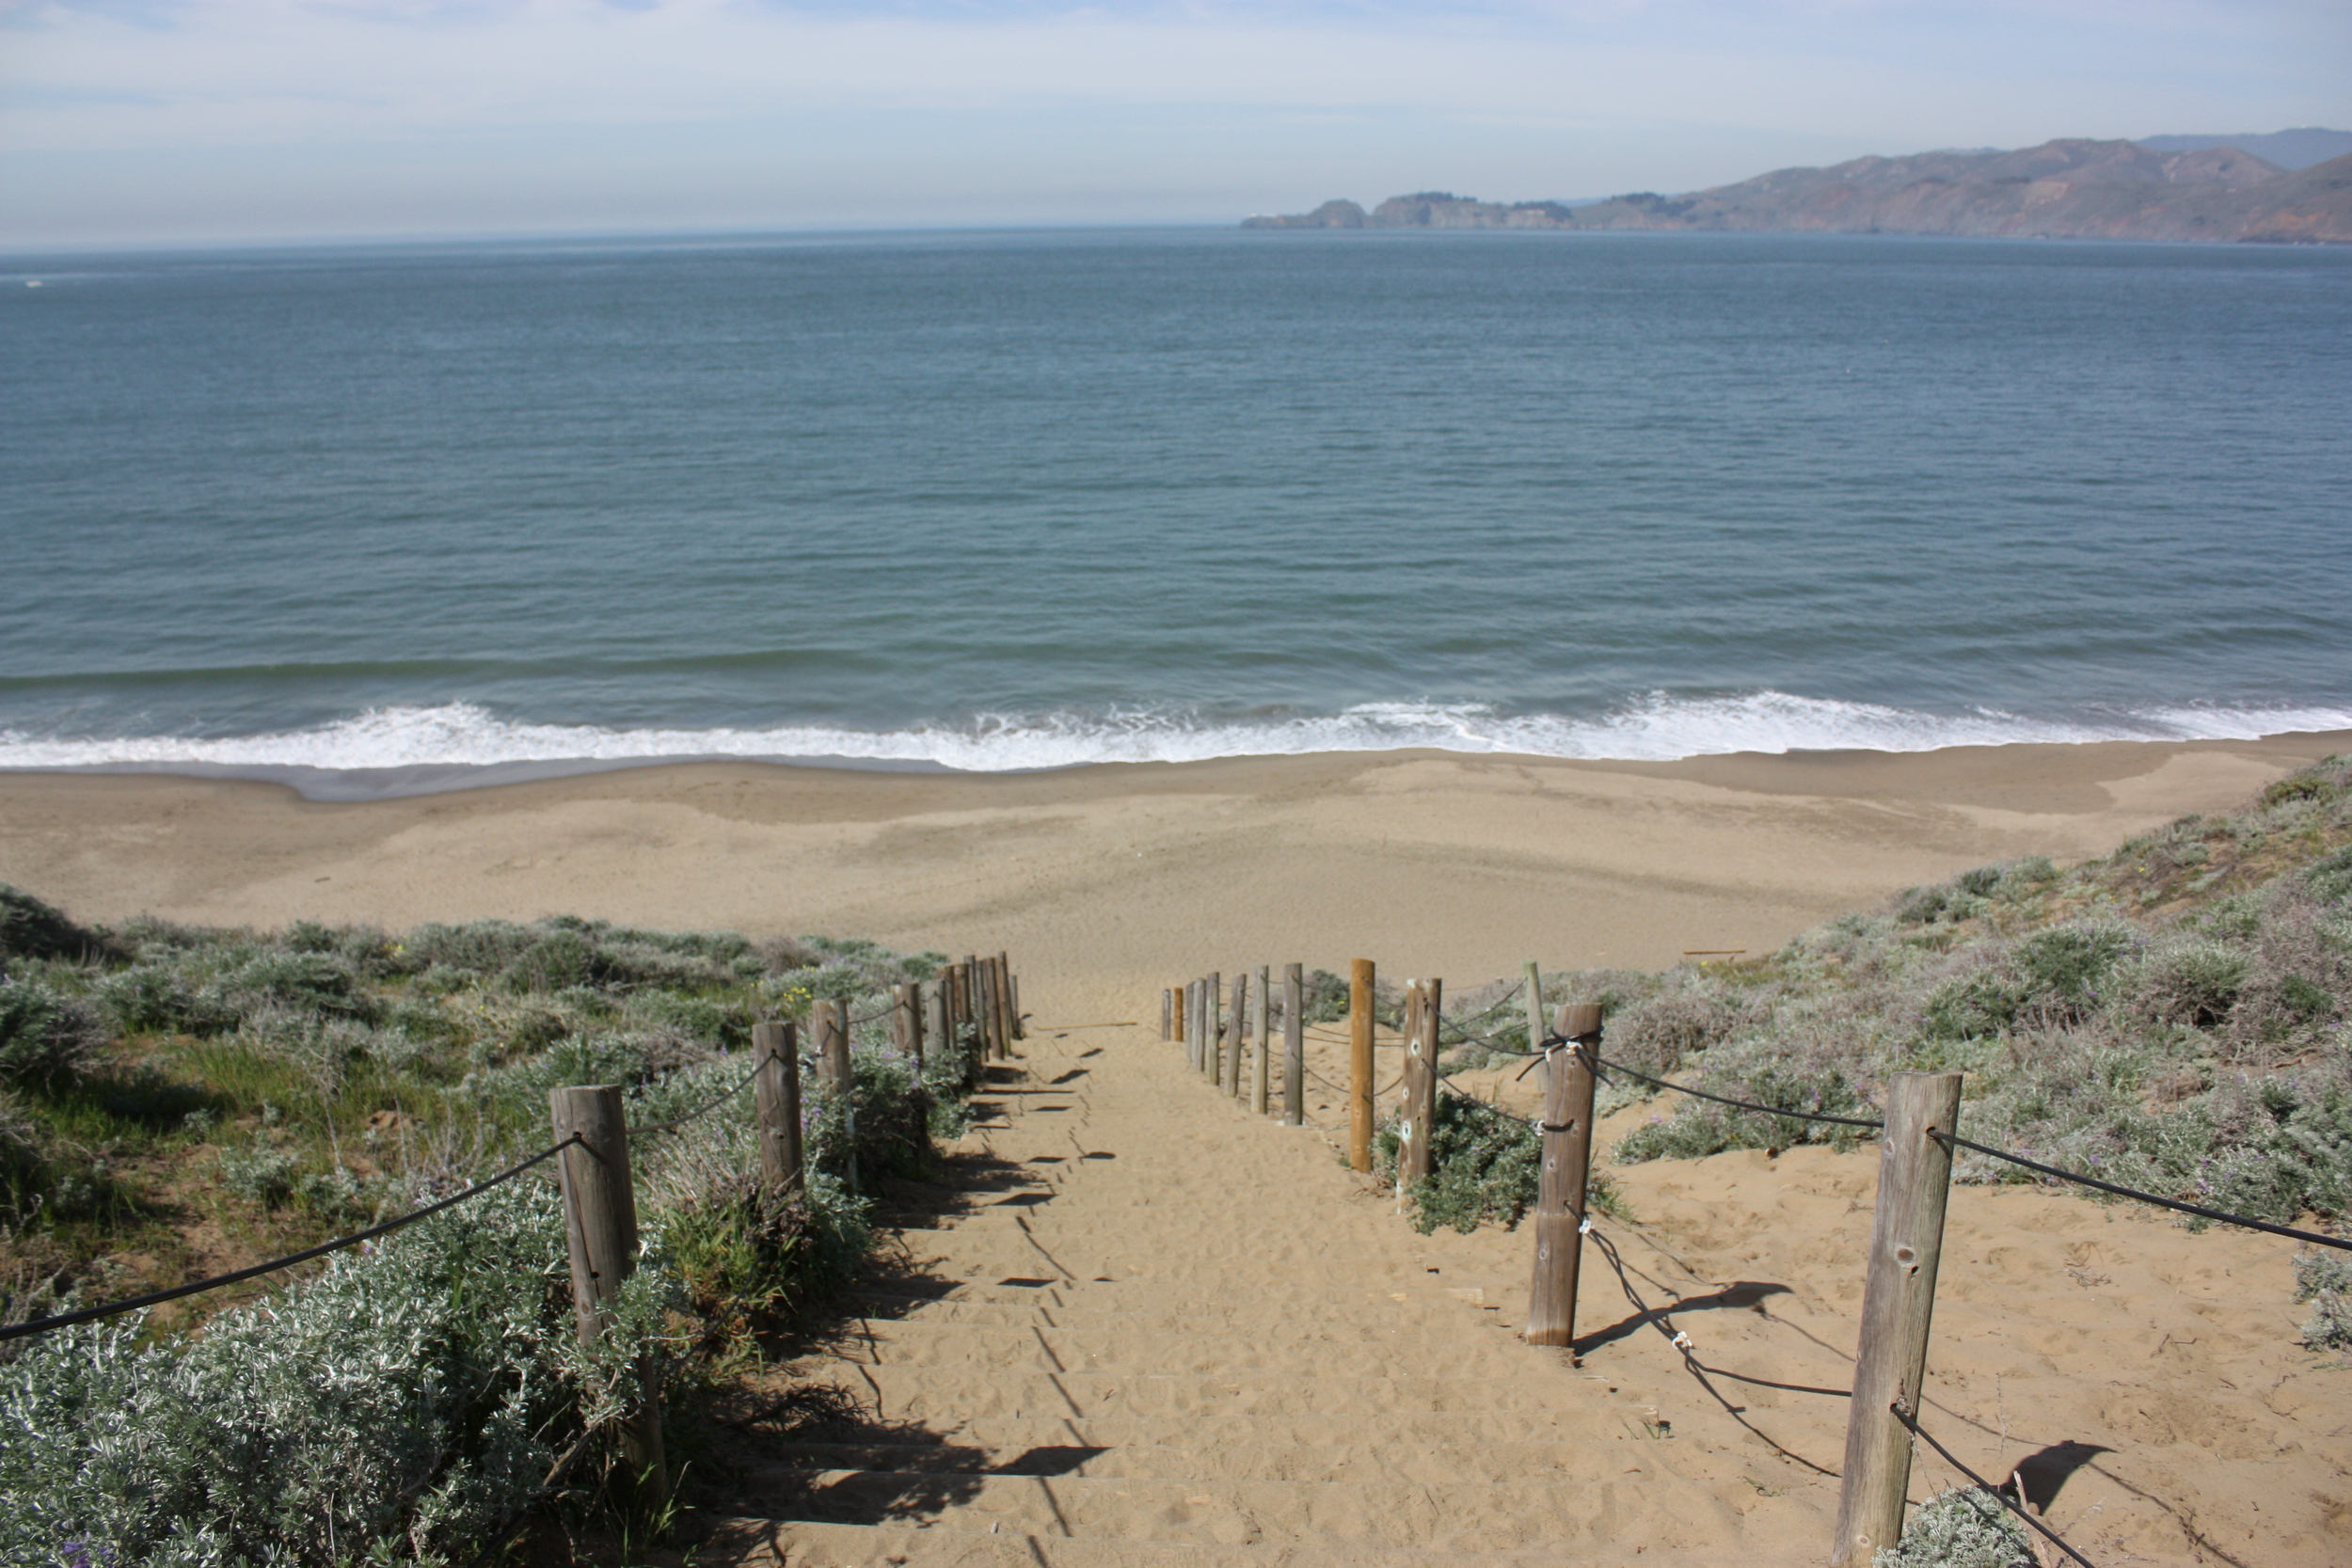 The Ocean Beach jogging trail, with its beautiful views of the Pacific Ocean and the Golden Gate Bridge, is a favorite with runners and walkers.